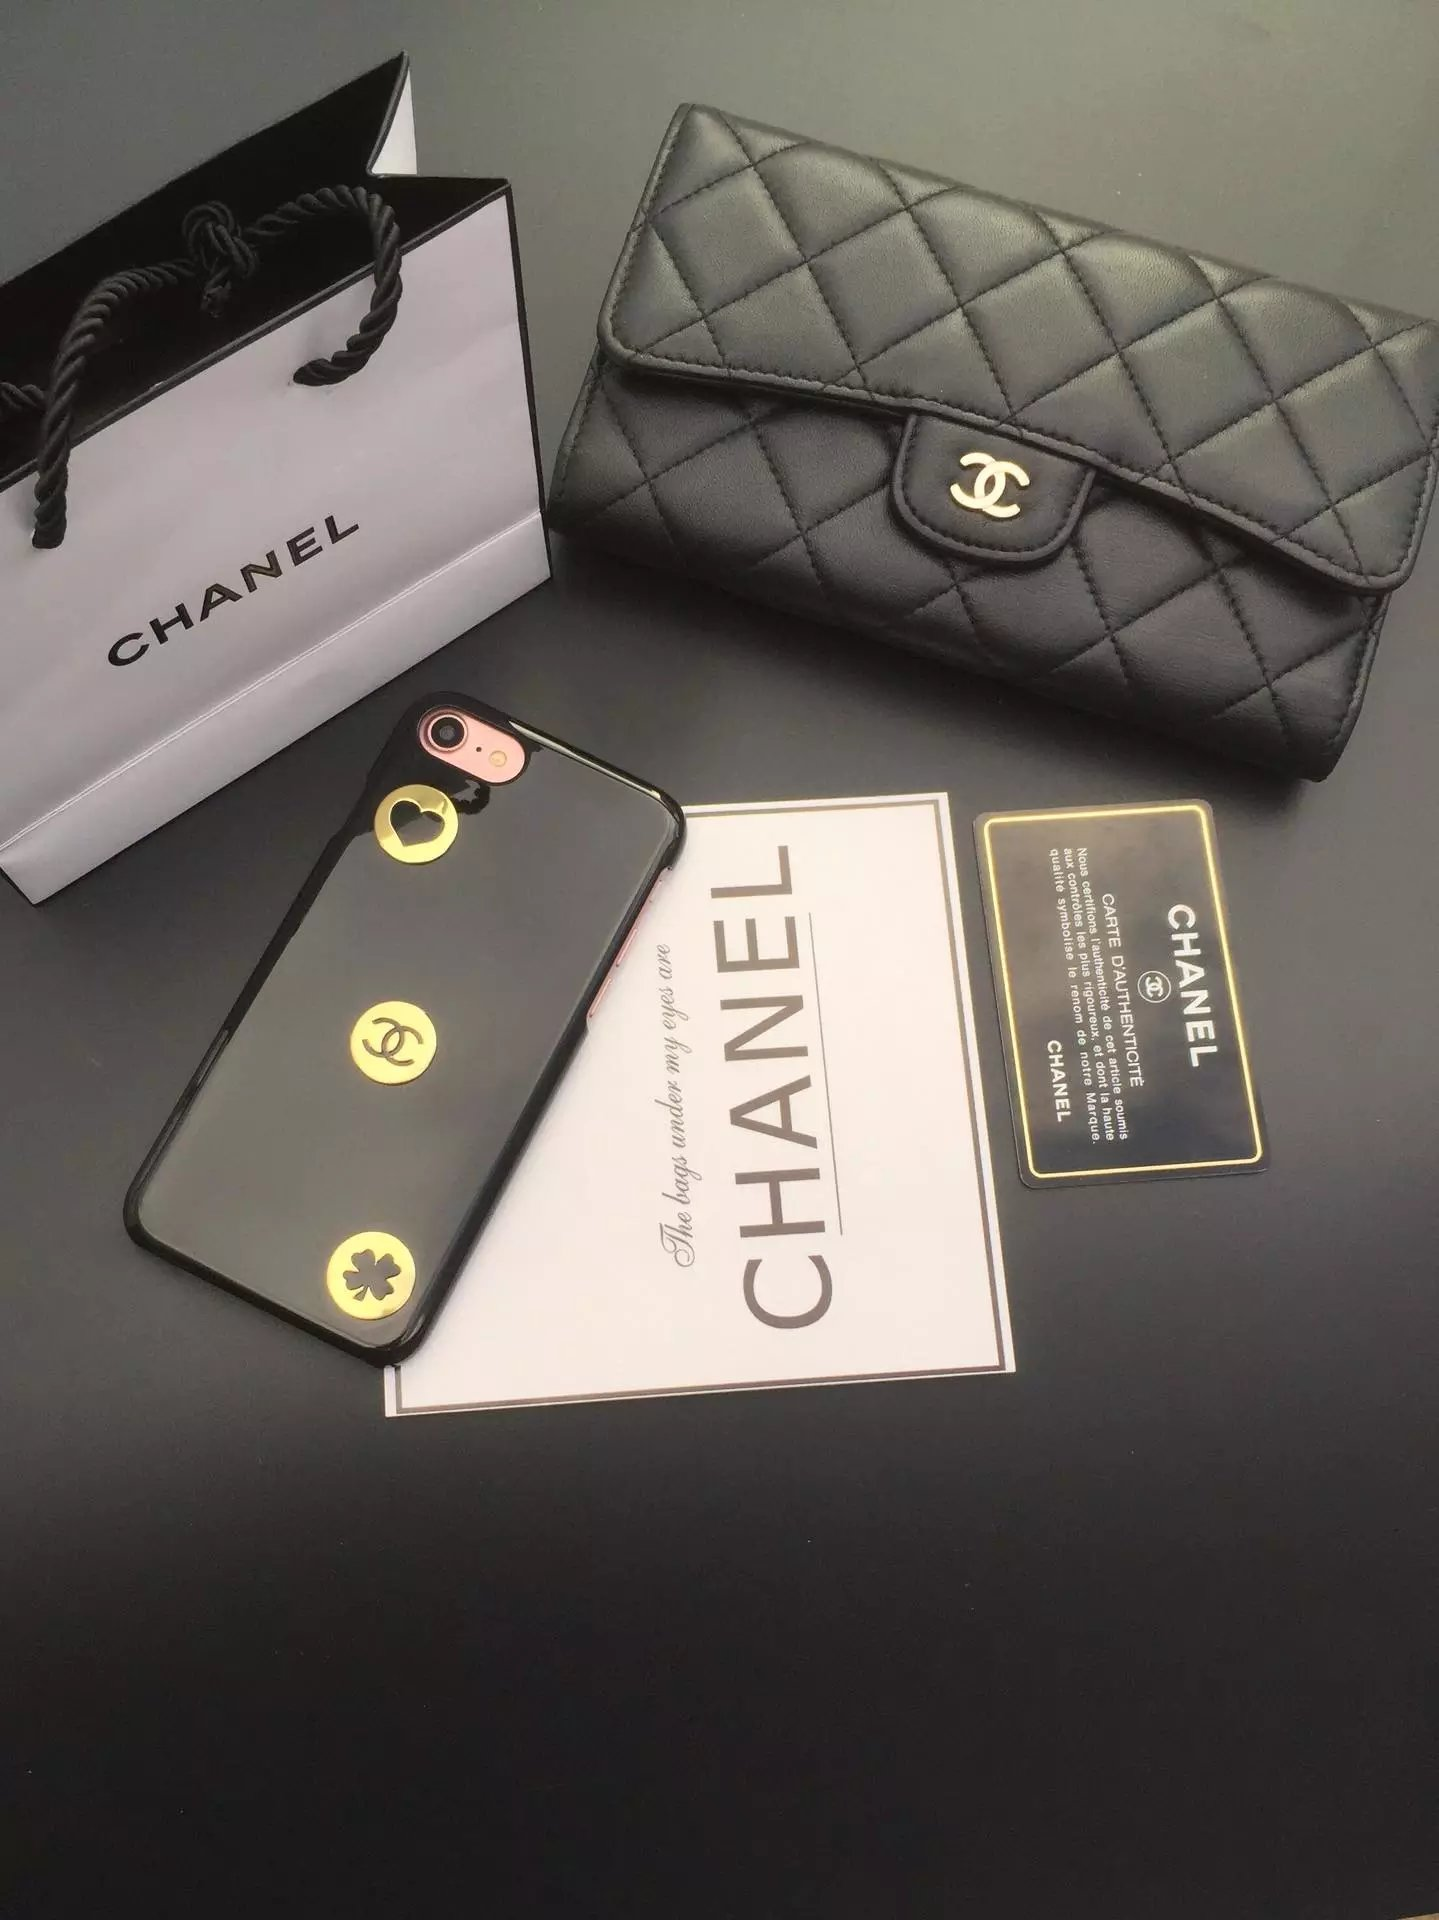 iphone 8 Plus case shop iphone 8 Plus covers uk Chanel iphone 8 Plus case iphoe cases cases for the iphone 8 Plus protective covers for iphone 8 Plus make your own custom iphone case how much are mophie cases ultimate iPhone 8 Plus case